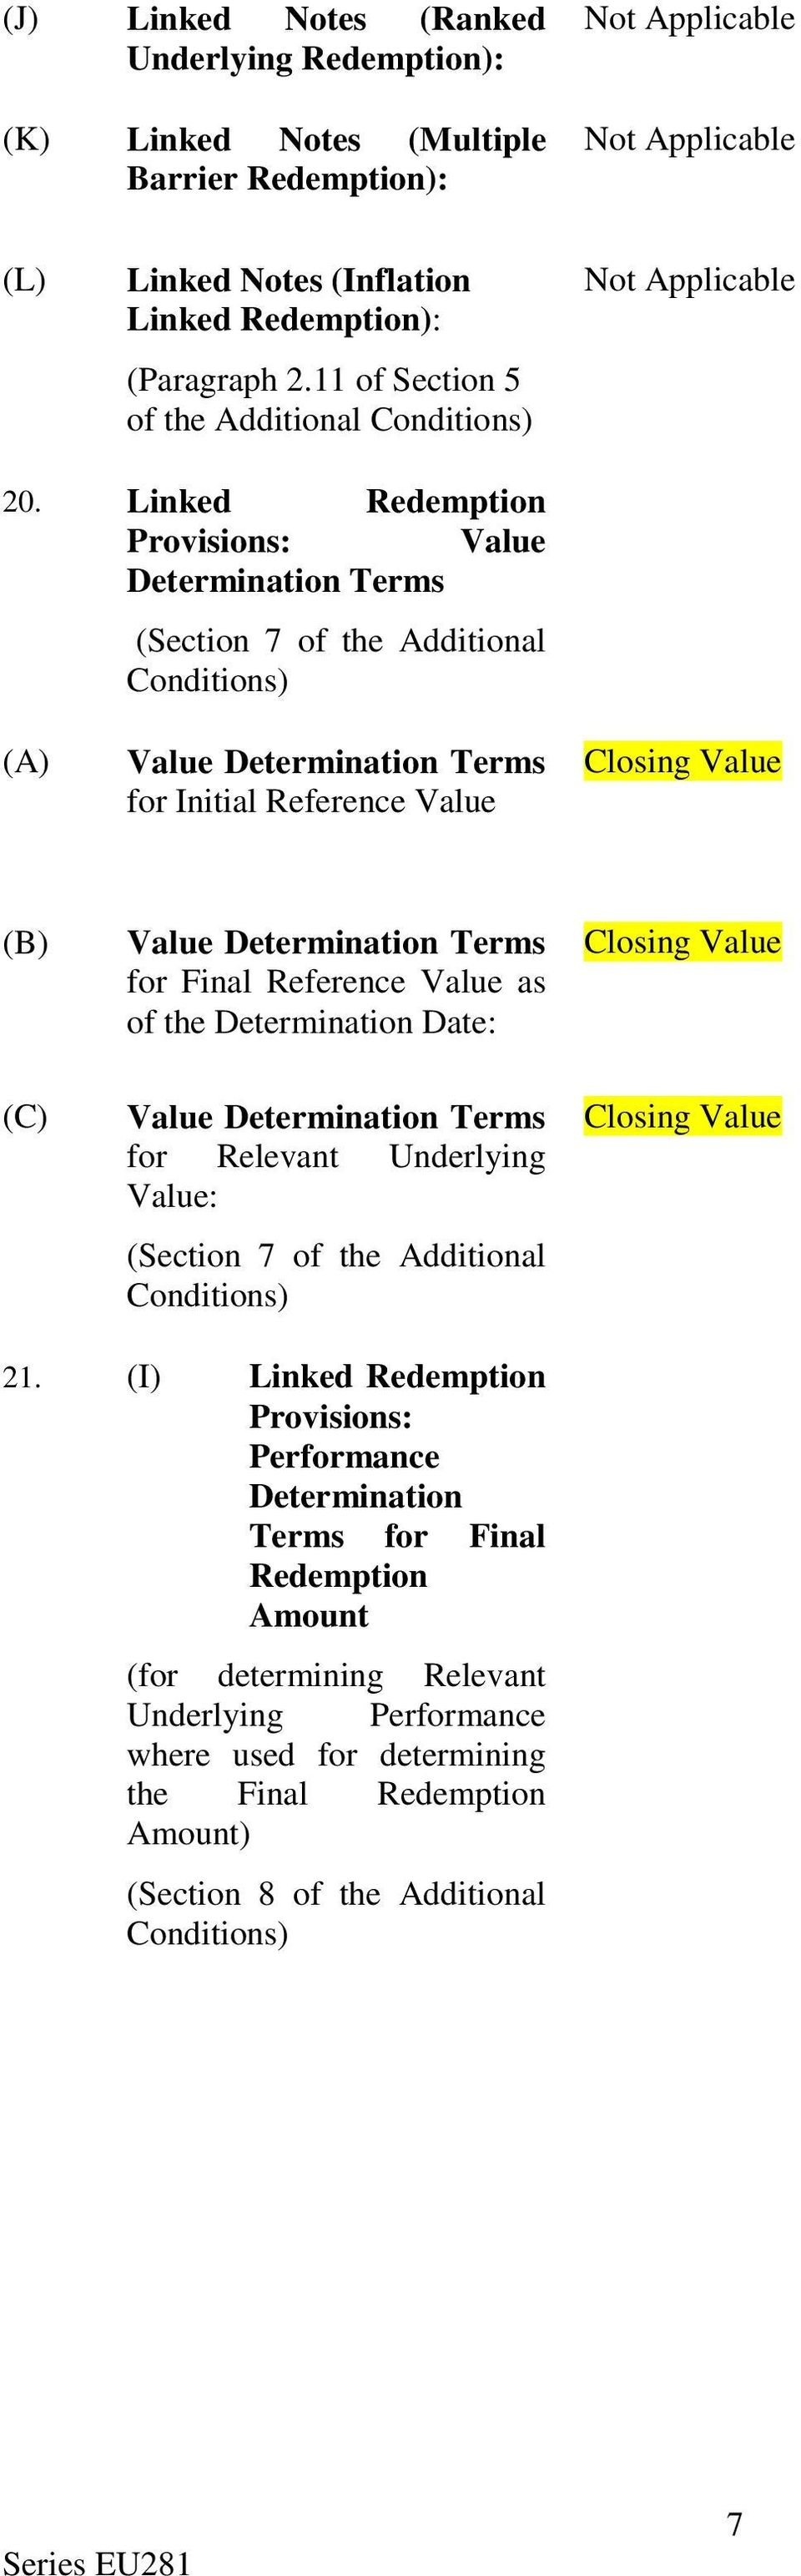 Linked Redemption Provisions: Value Determination Terms (Section 7 of the Additional Conditions) (A) Value Determination Terms for Initial Reference Value Closing Value (B) (C) Value Determination